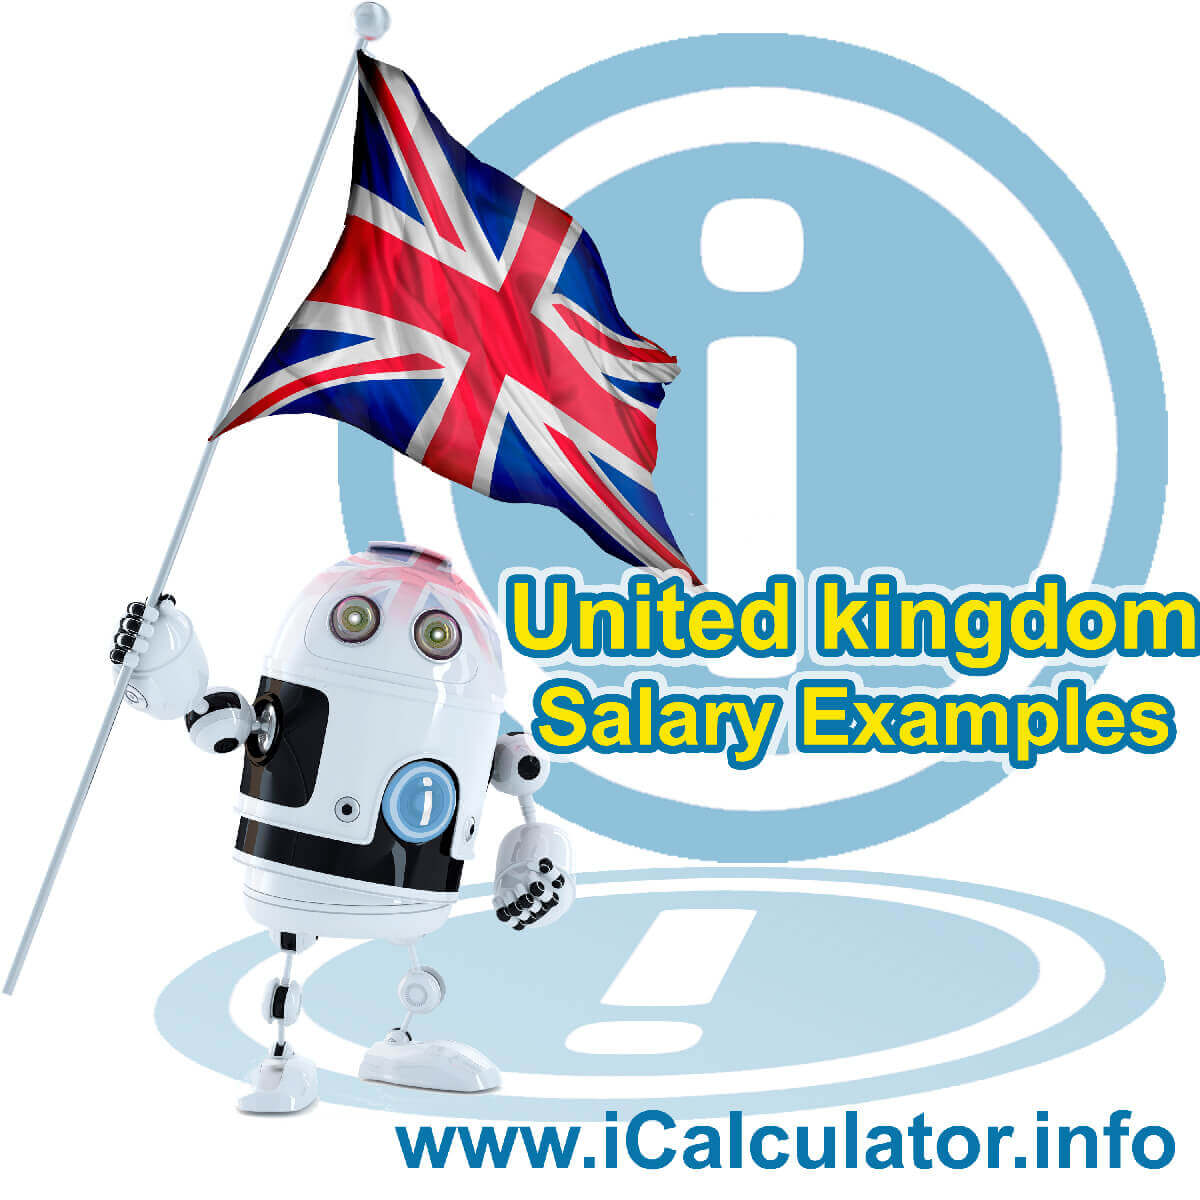 UK Salary Examples. This image shows the United Kingdom flag and information relating to the tax formula used to calculate the UK Salary Examples